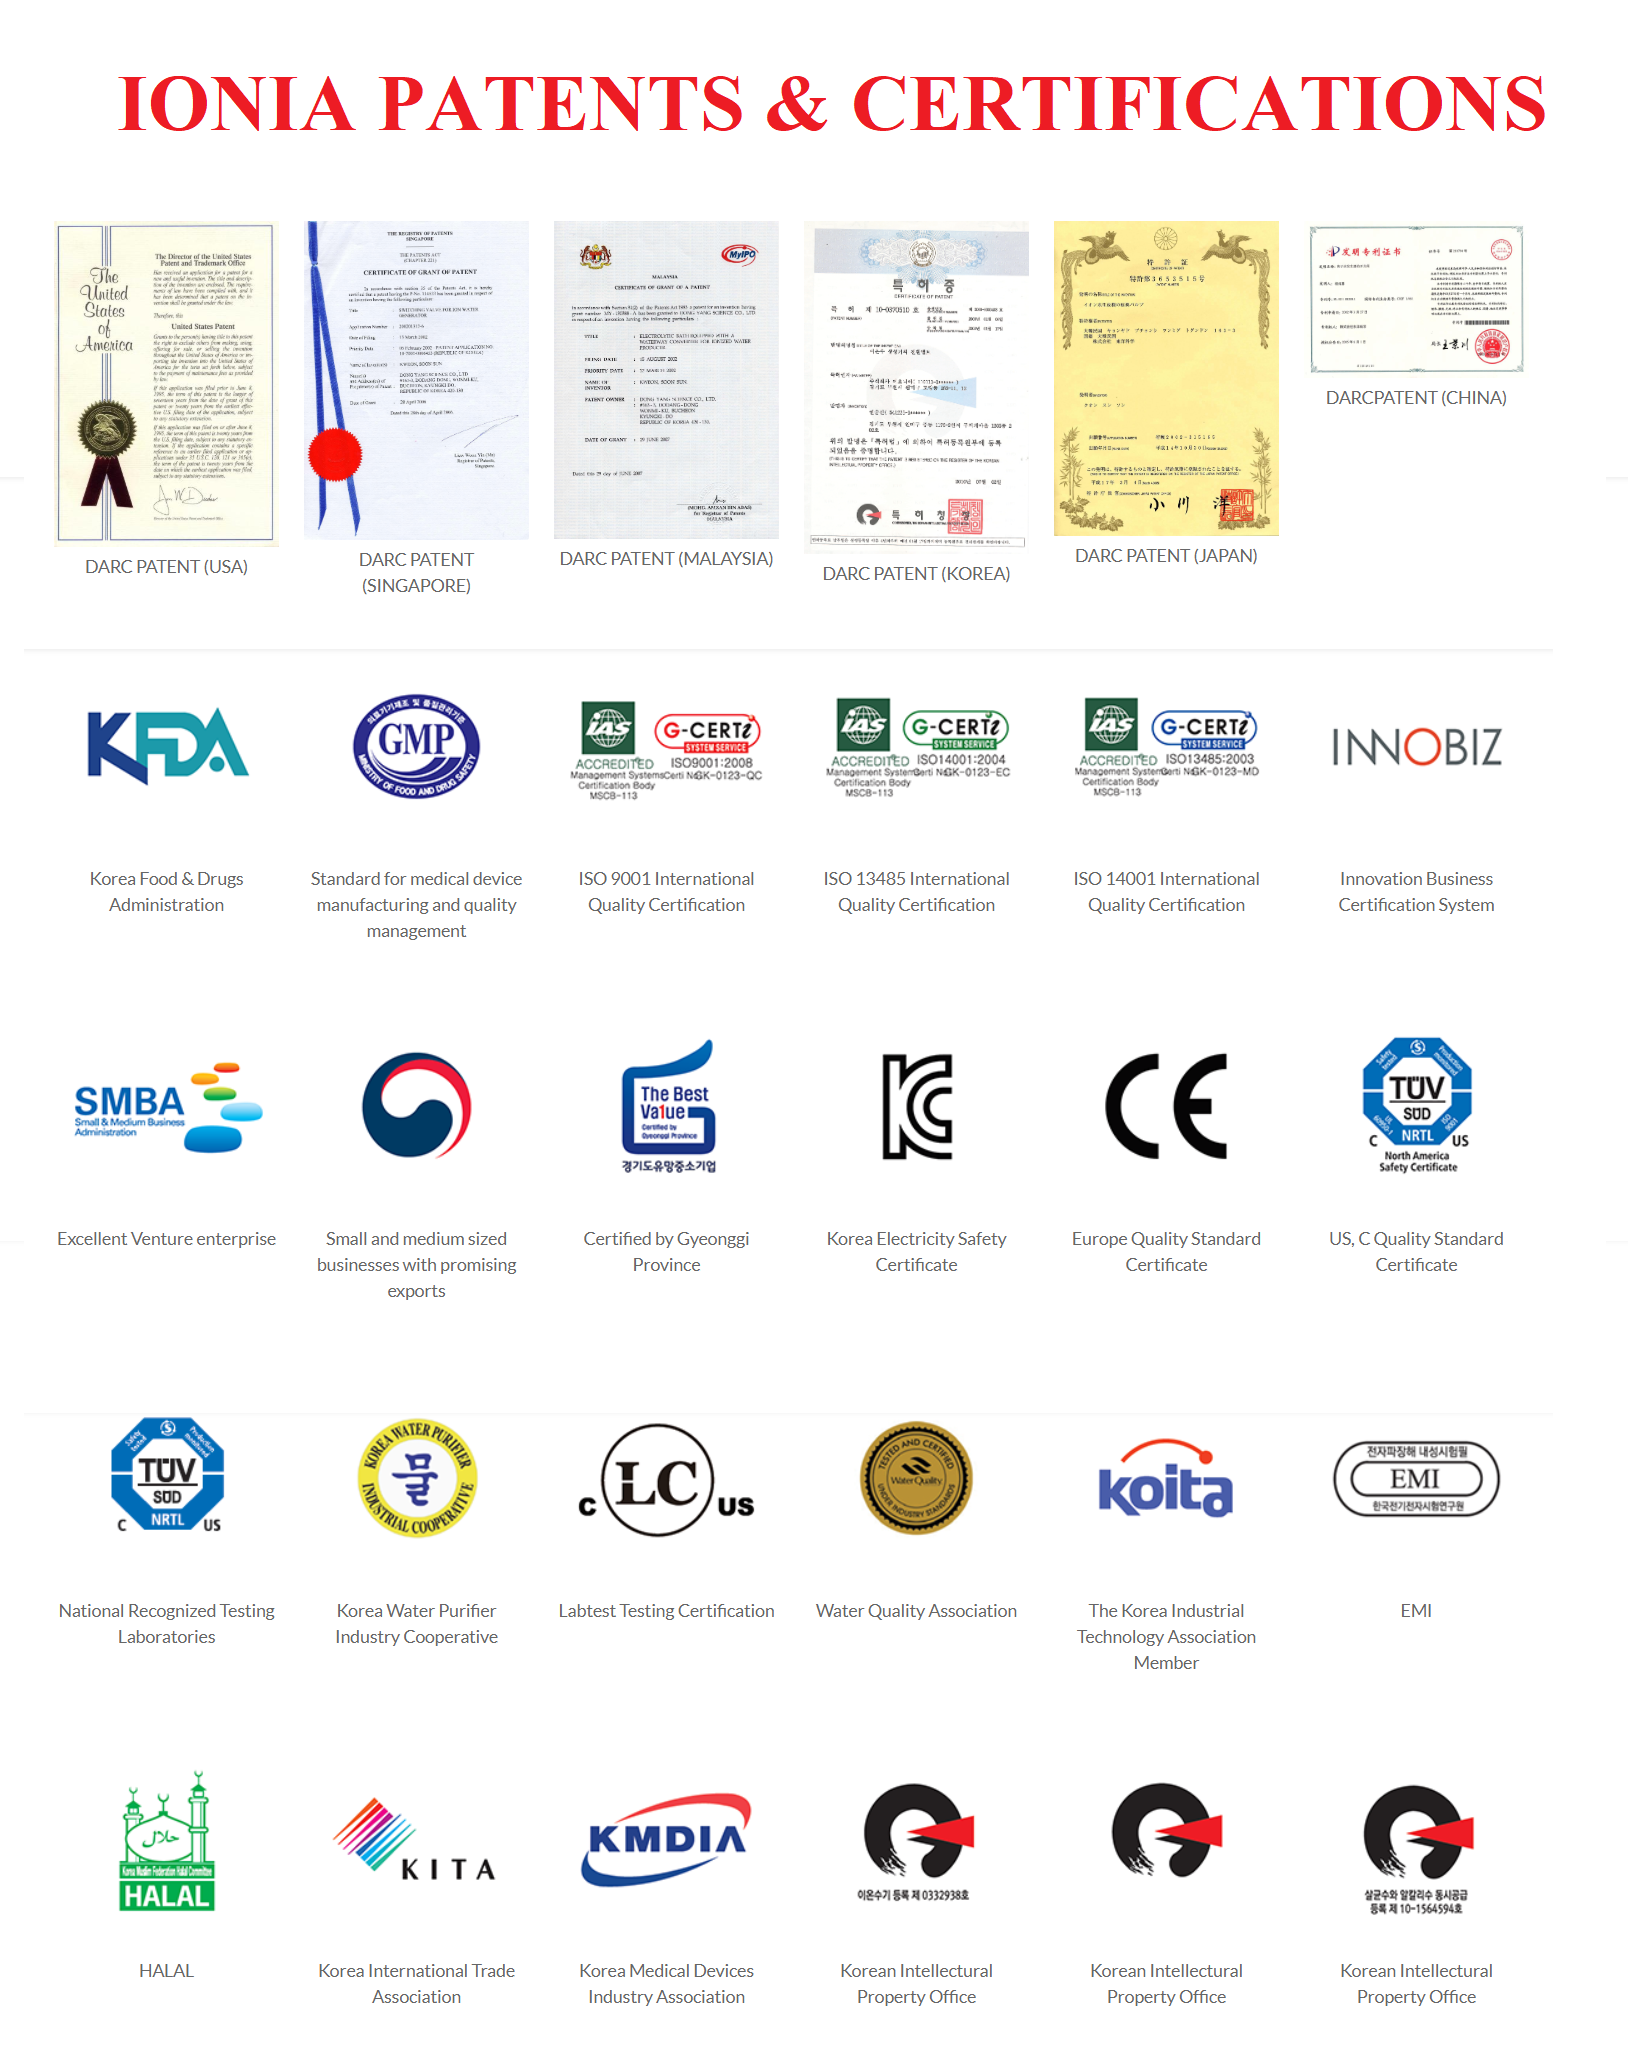 ionia-patents-certifications.png